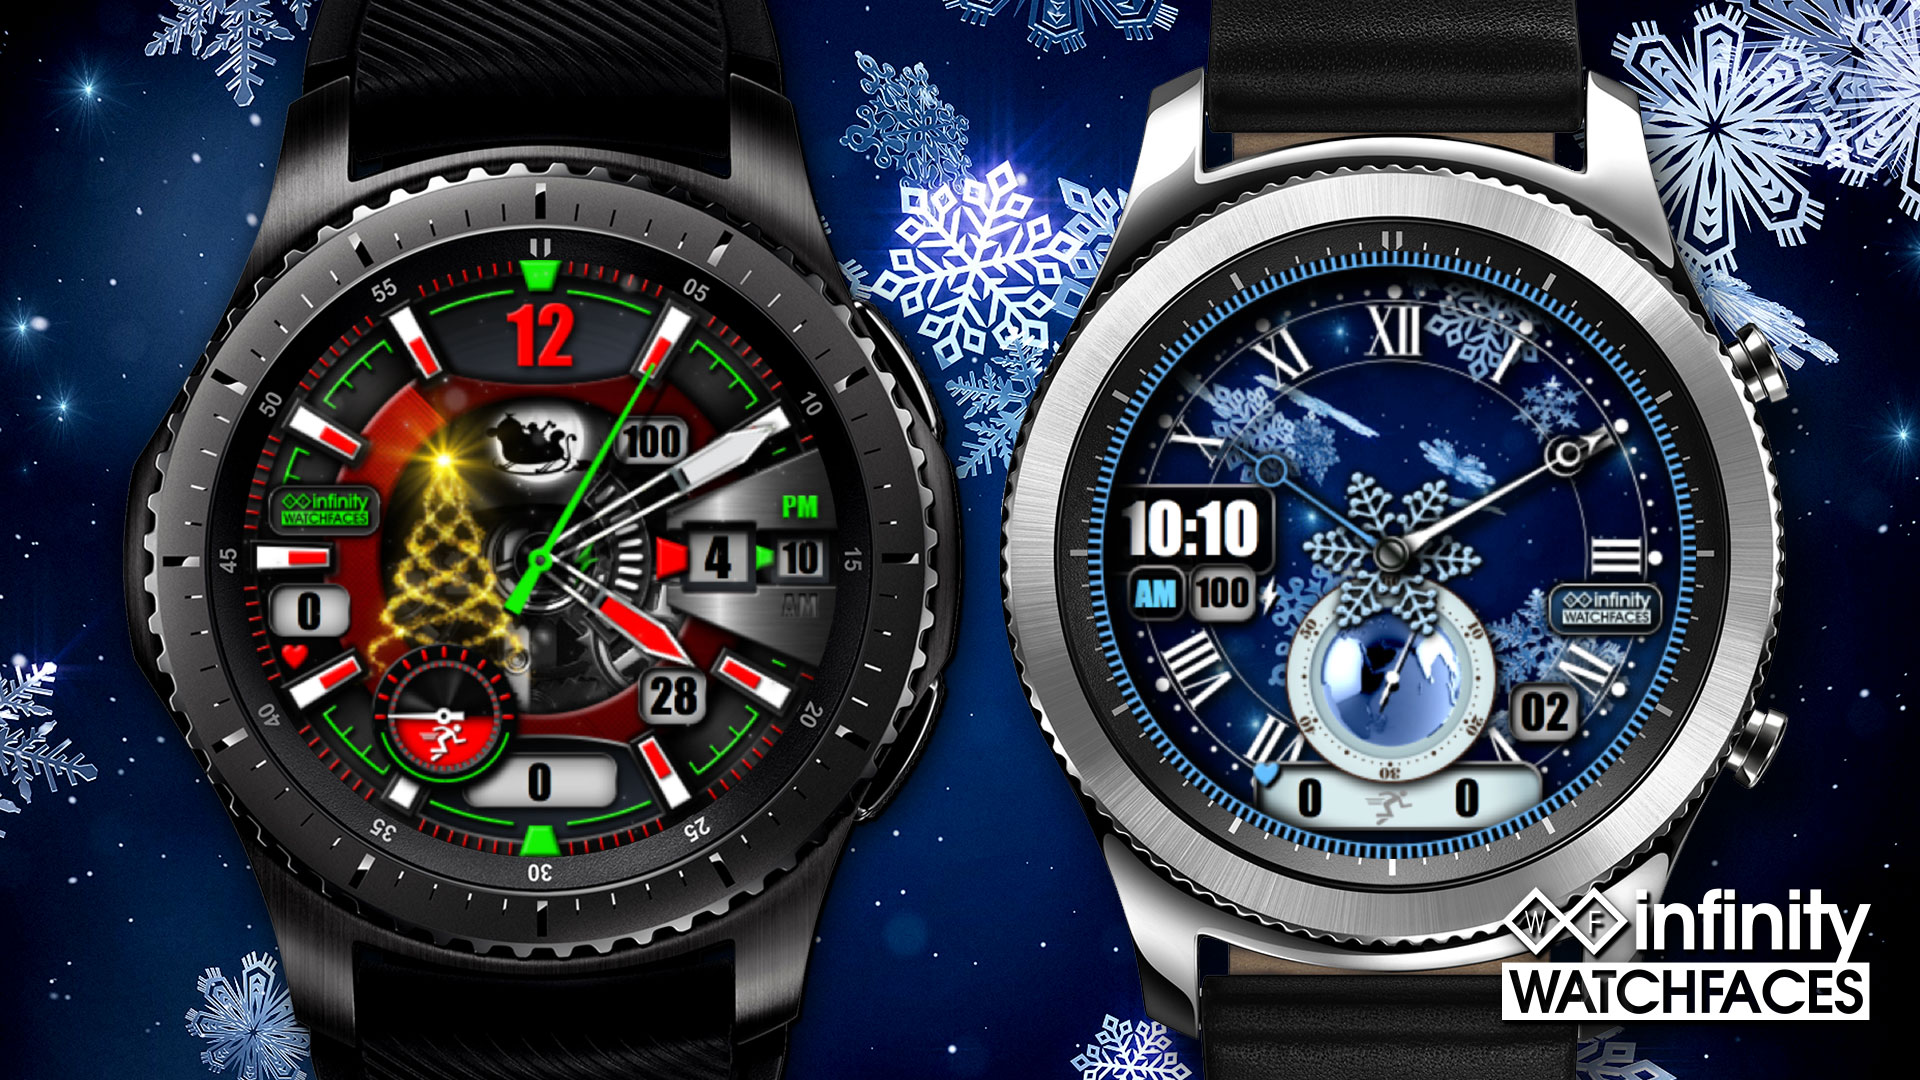 Gear S2 Black Friday : two must have christmas watch faces gear s3 s2 infinity watchfaces ~ Hamham.info Haus und Dekorationen